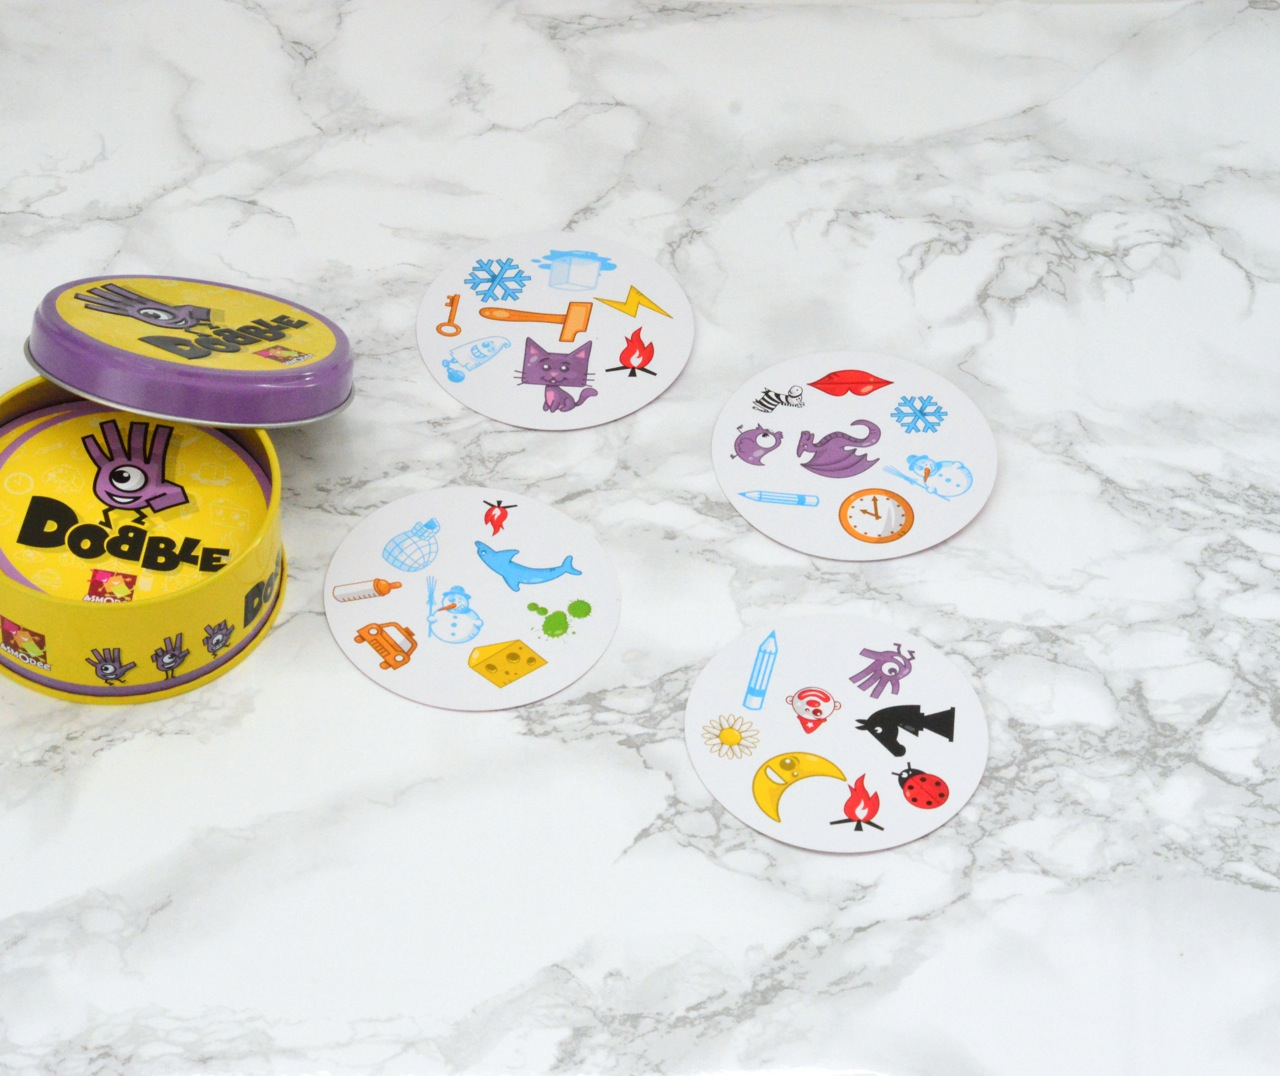 dobble family card game